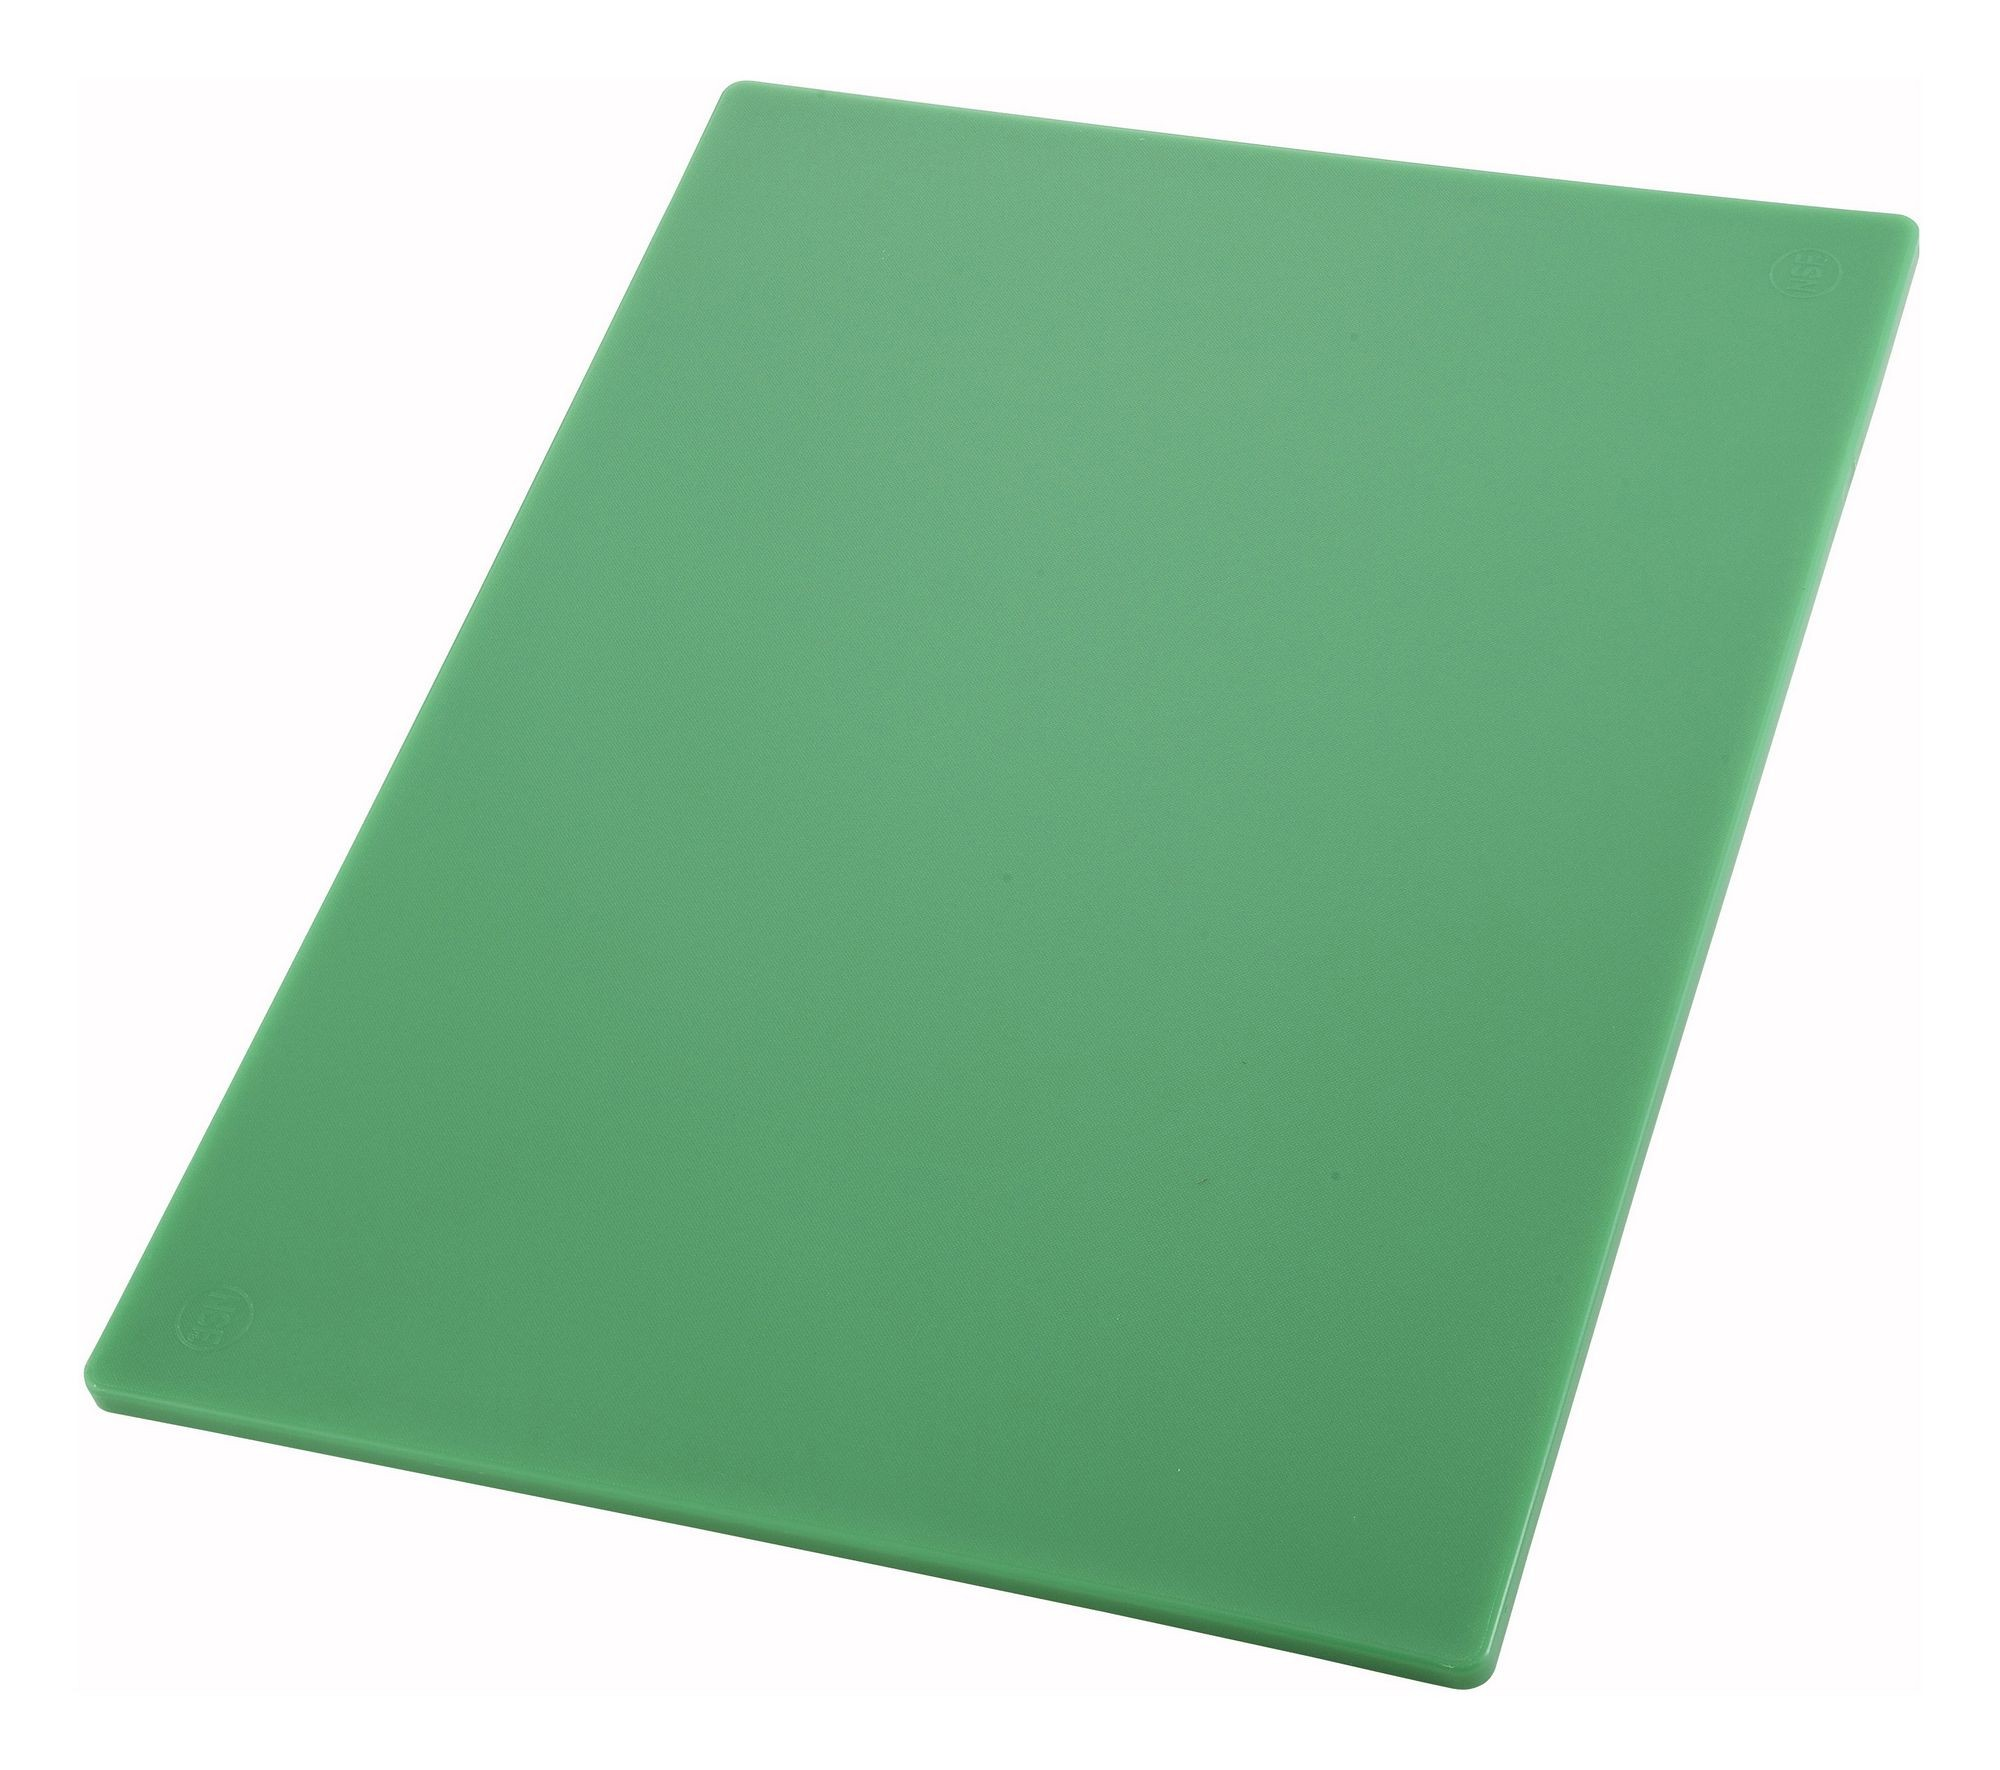 Thick Green Cutting Board 18 Quot X 24 Quot X 1 2 Quot Lionsdeal